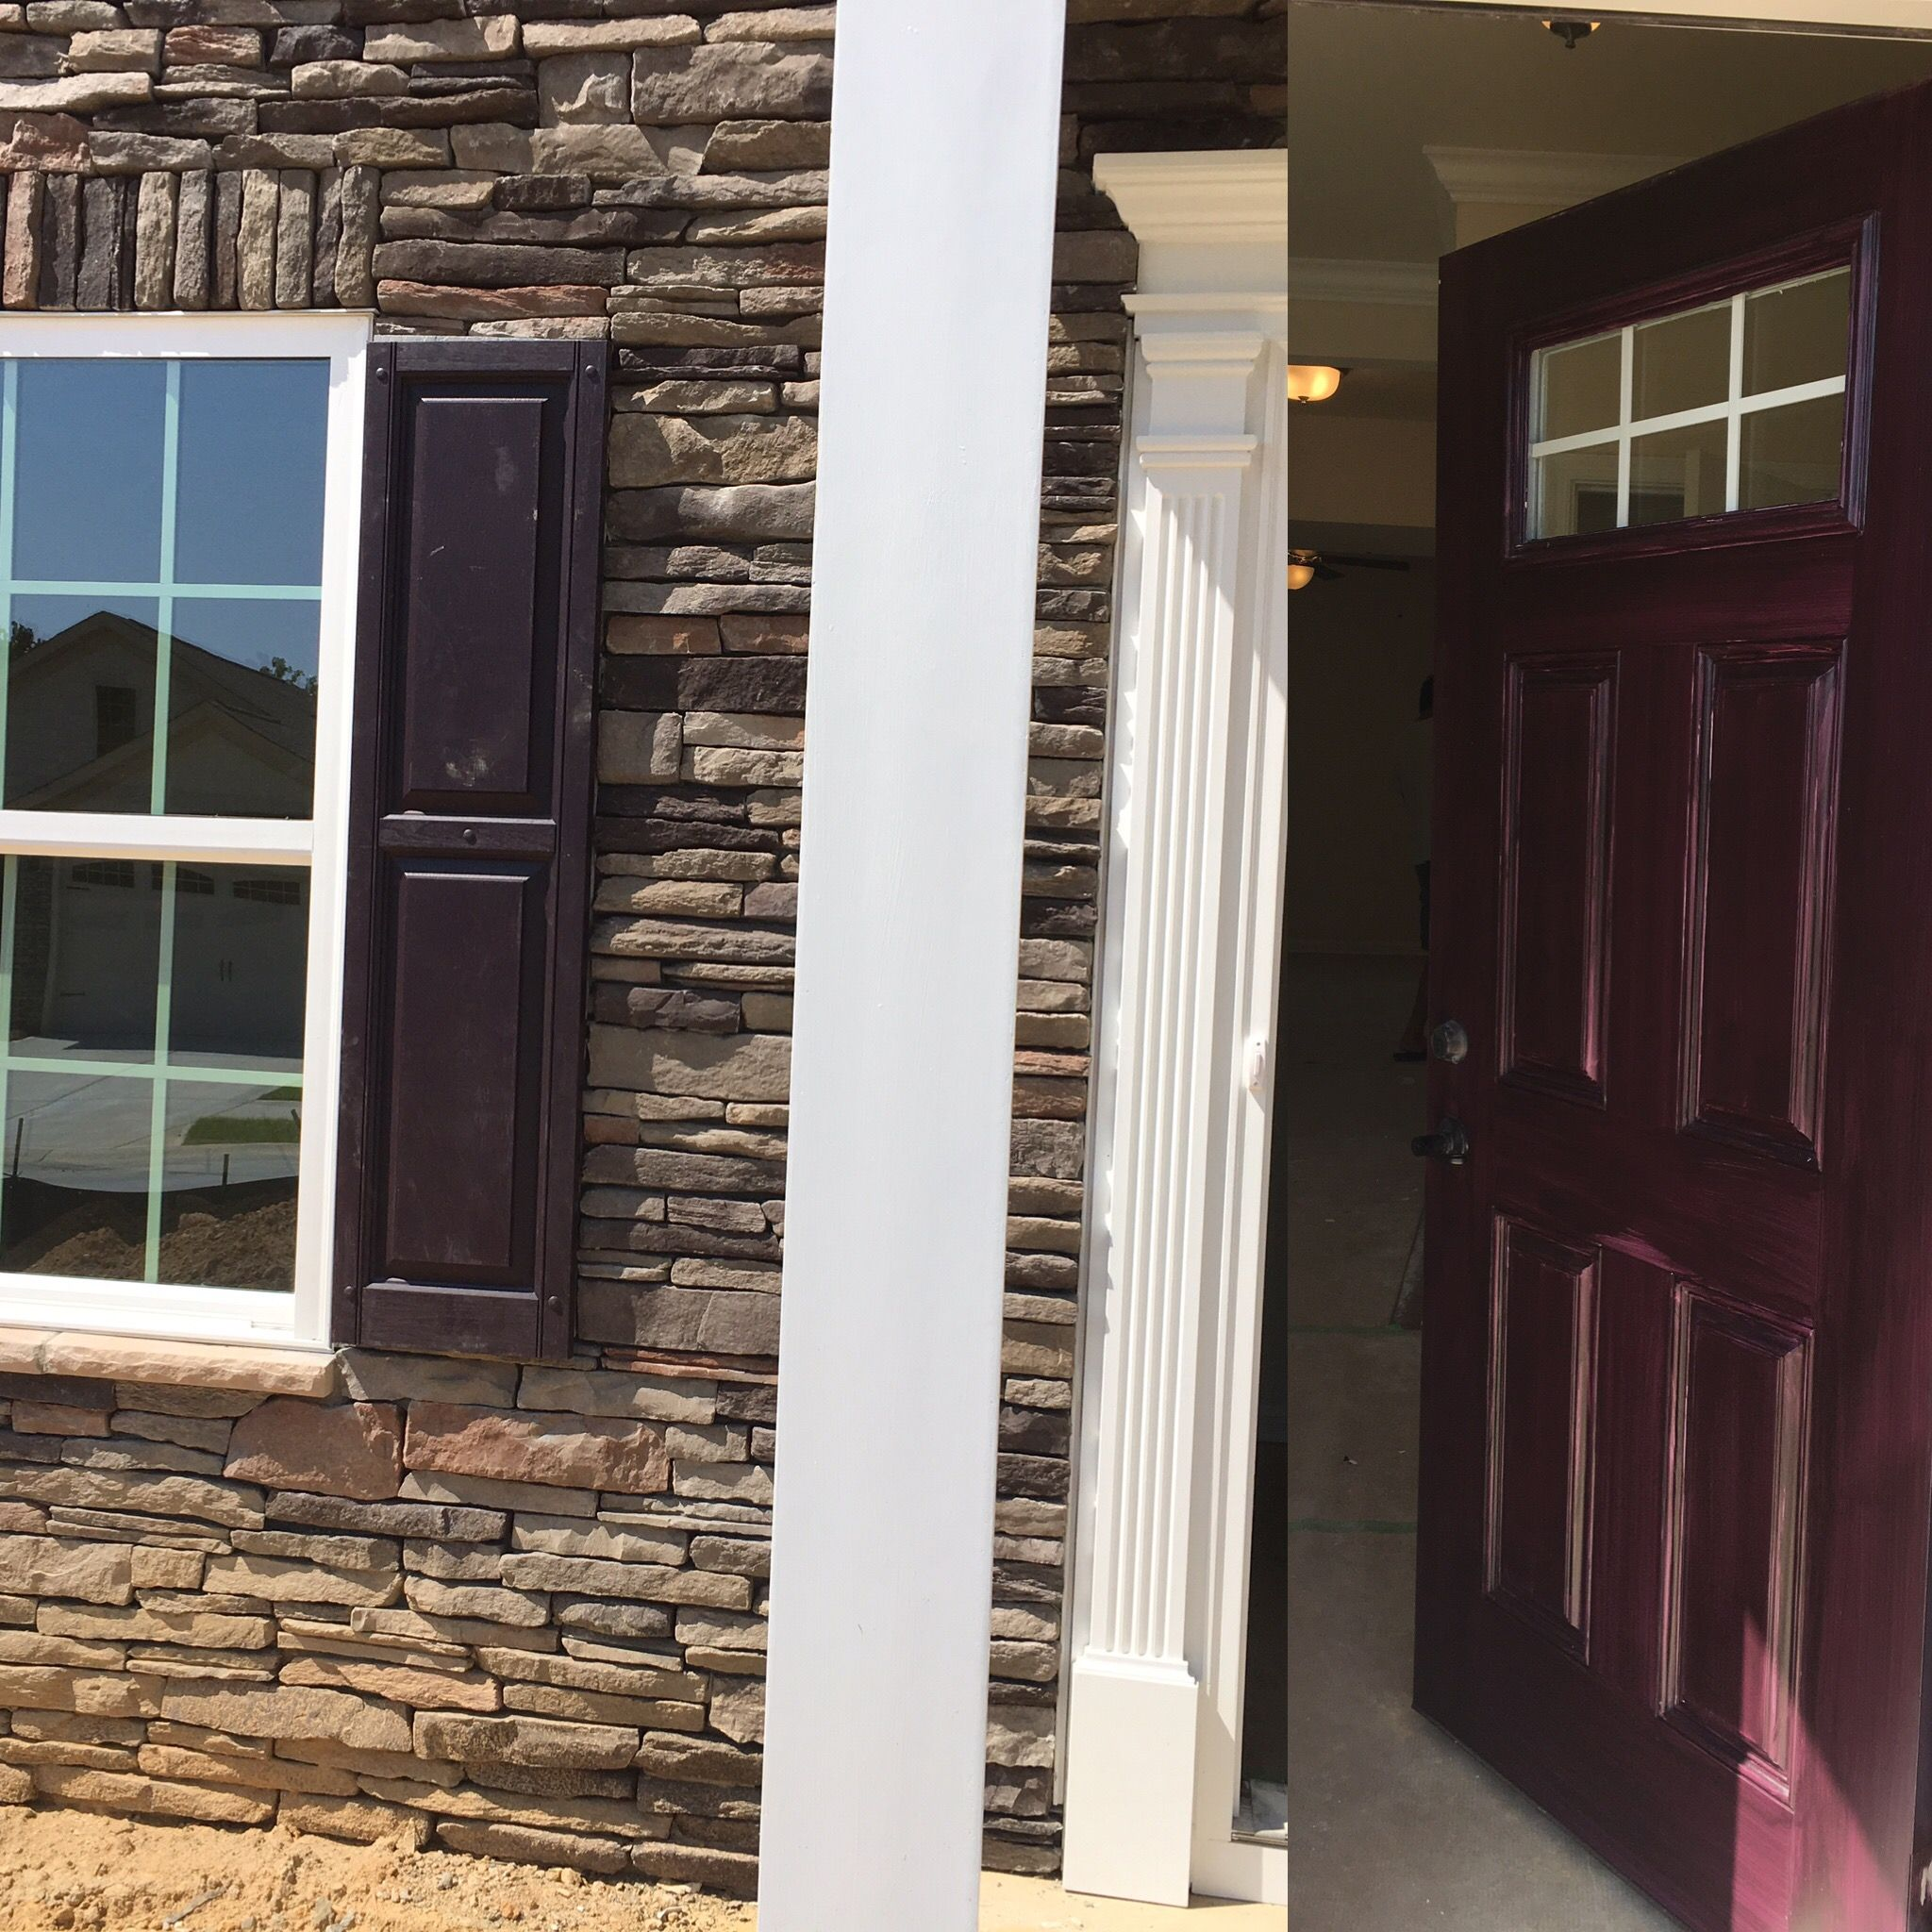 Wild Berry Color For Main Door And Window Shutters. One More Coat Of Paint  Pending Over Main Door. #ryanhomes #venice #elevation #frontdoor